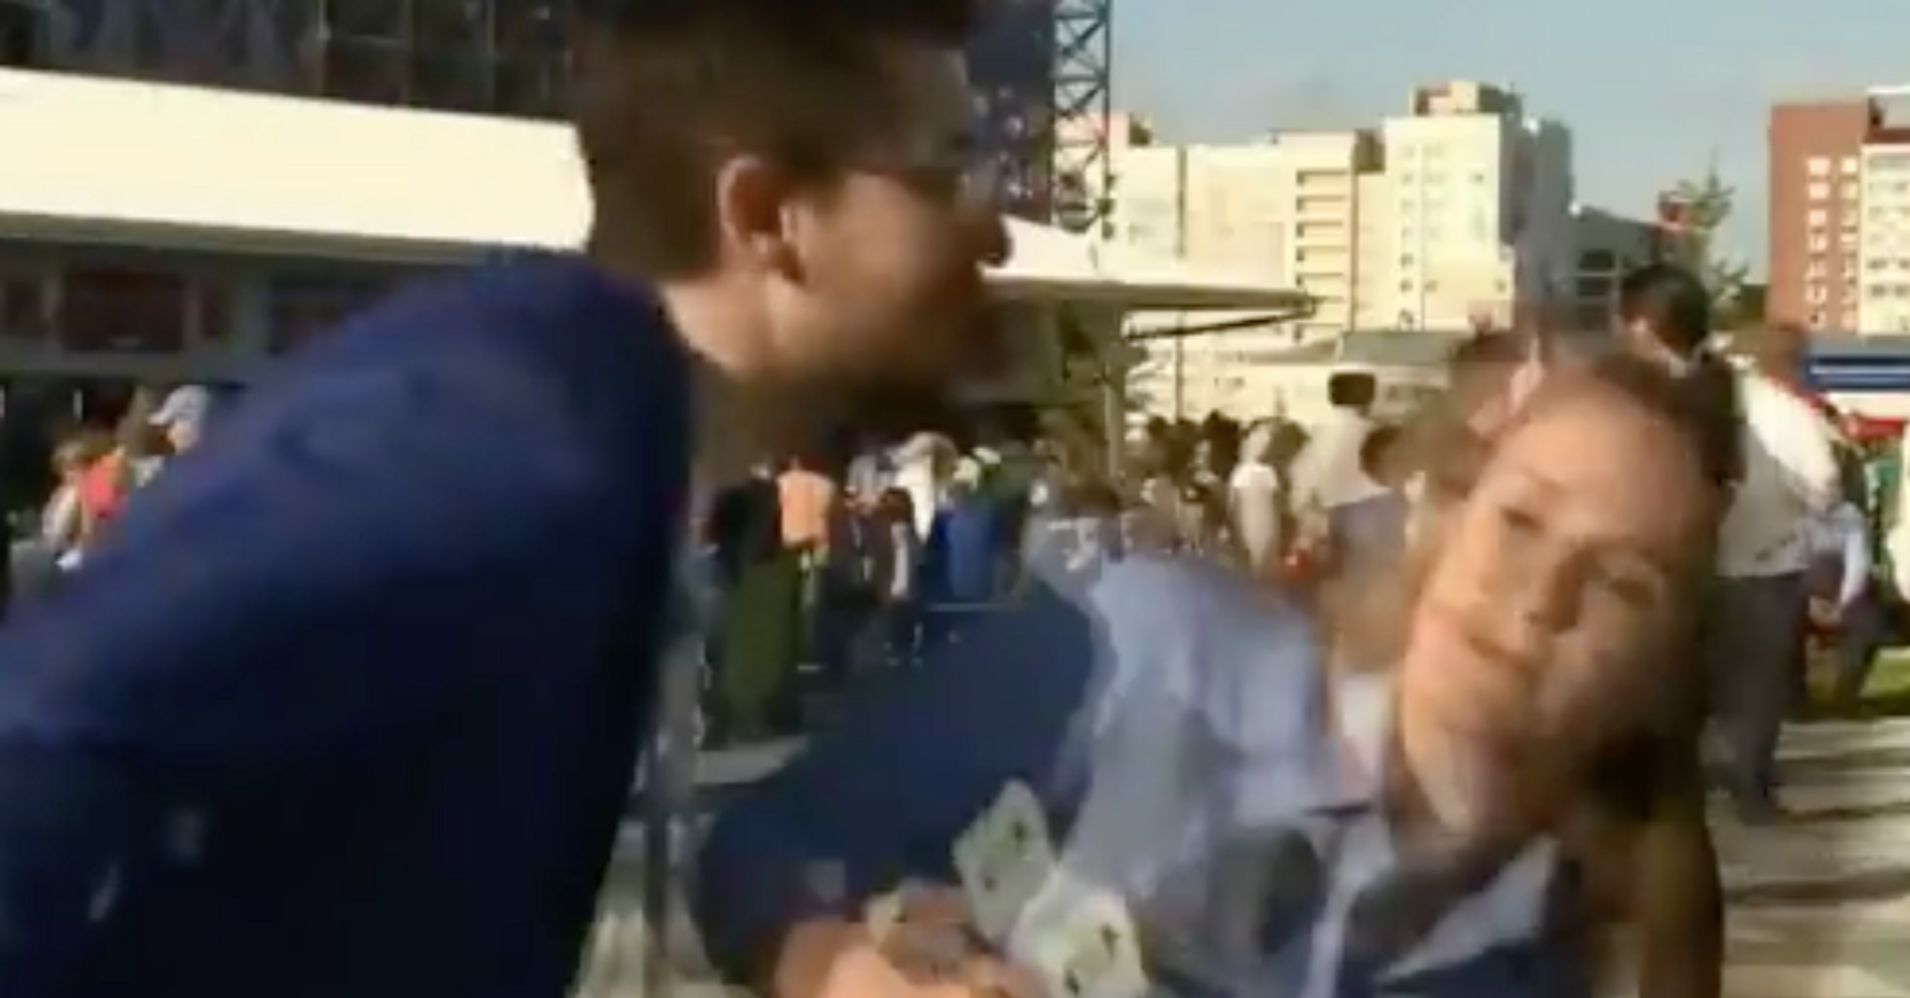 World Cup Reporter Dodges Man's Kiss On Live TV, Makes Him Apologize